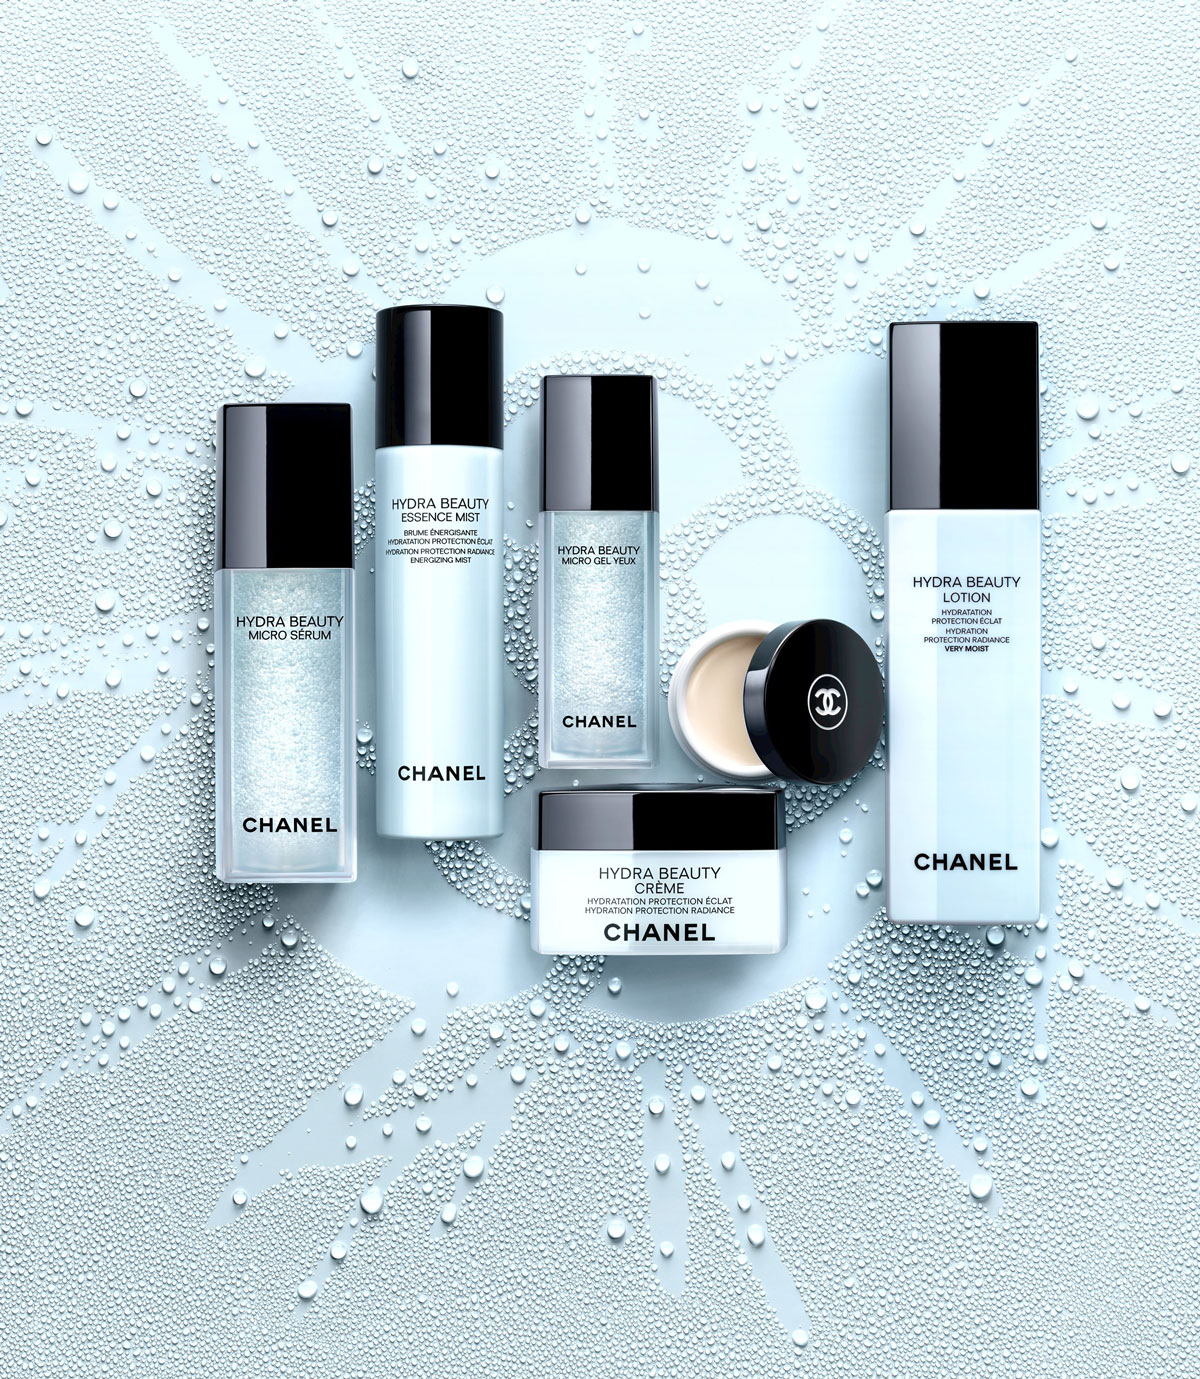 Chanel Extends Hydra Beauty Range | News | BeautyAlmanac